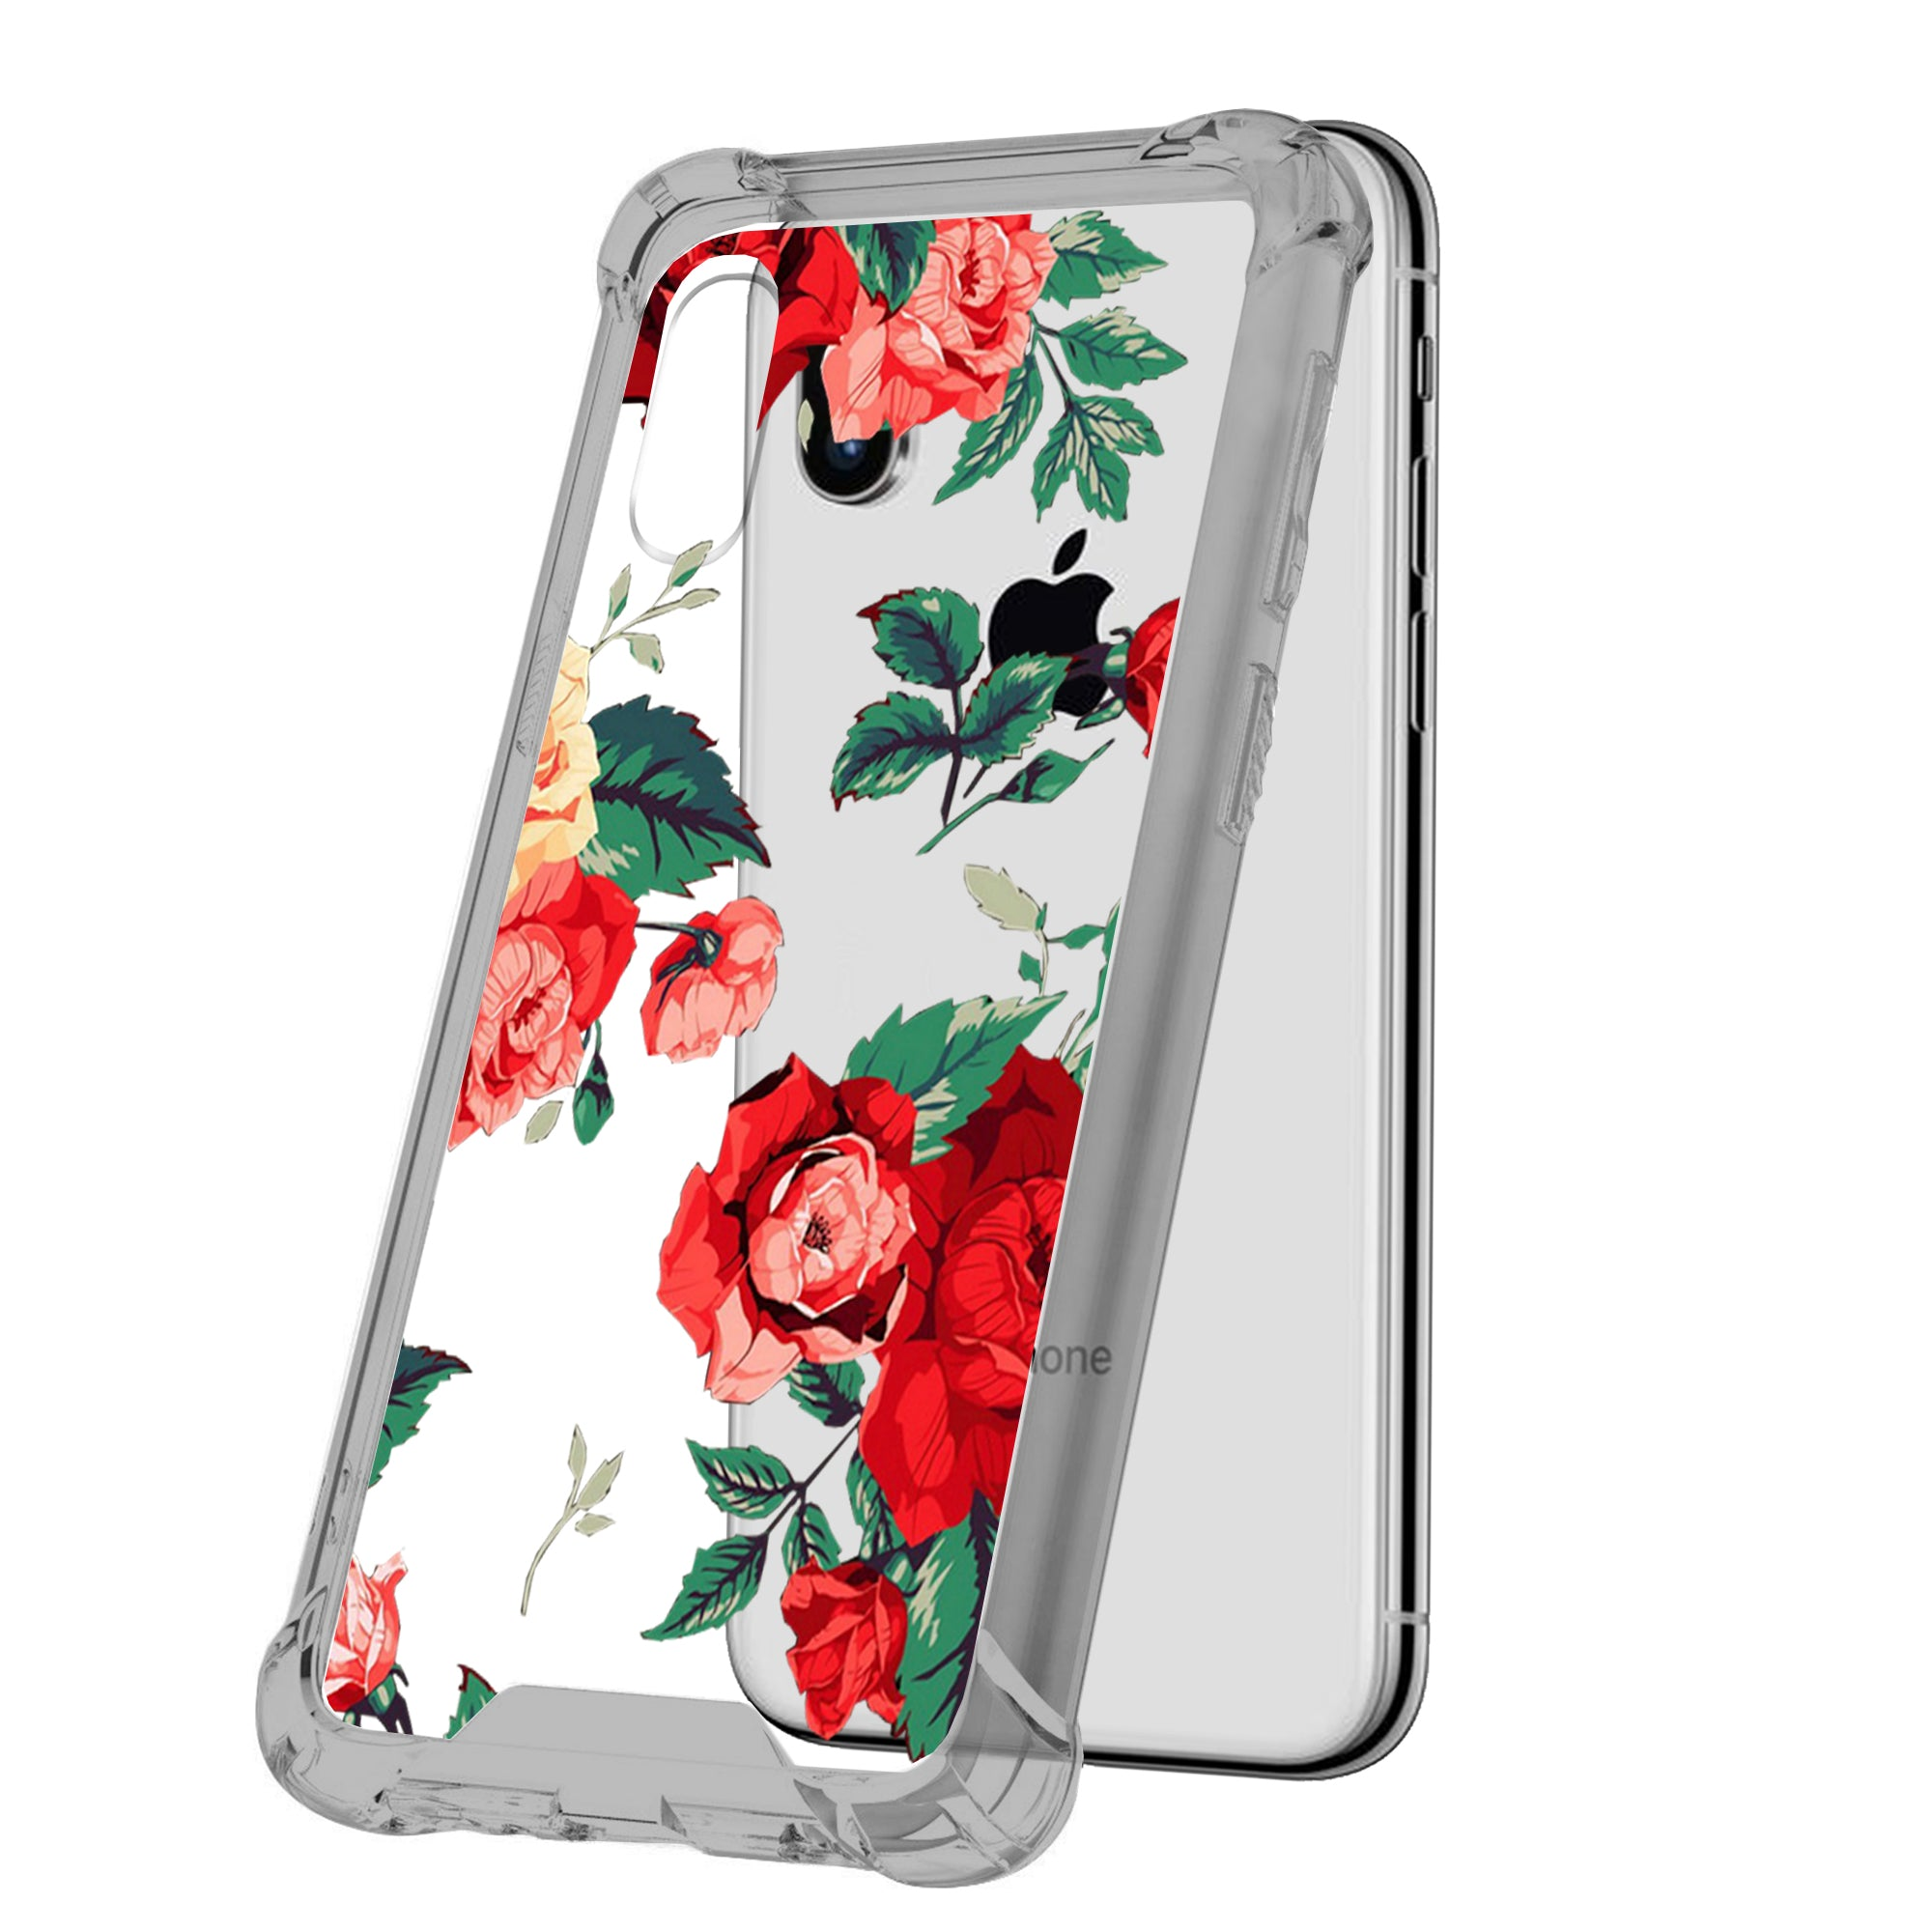 For-Apple-iPhone-Xs-Max-iPhone-Xs-Max-Black-TPU-Bumper-Case-Floral-Designs thumbnail 21